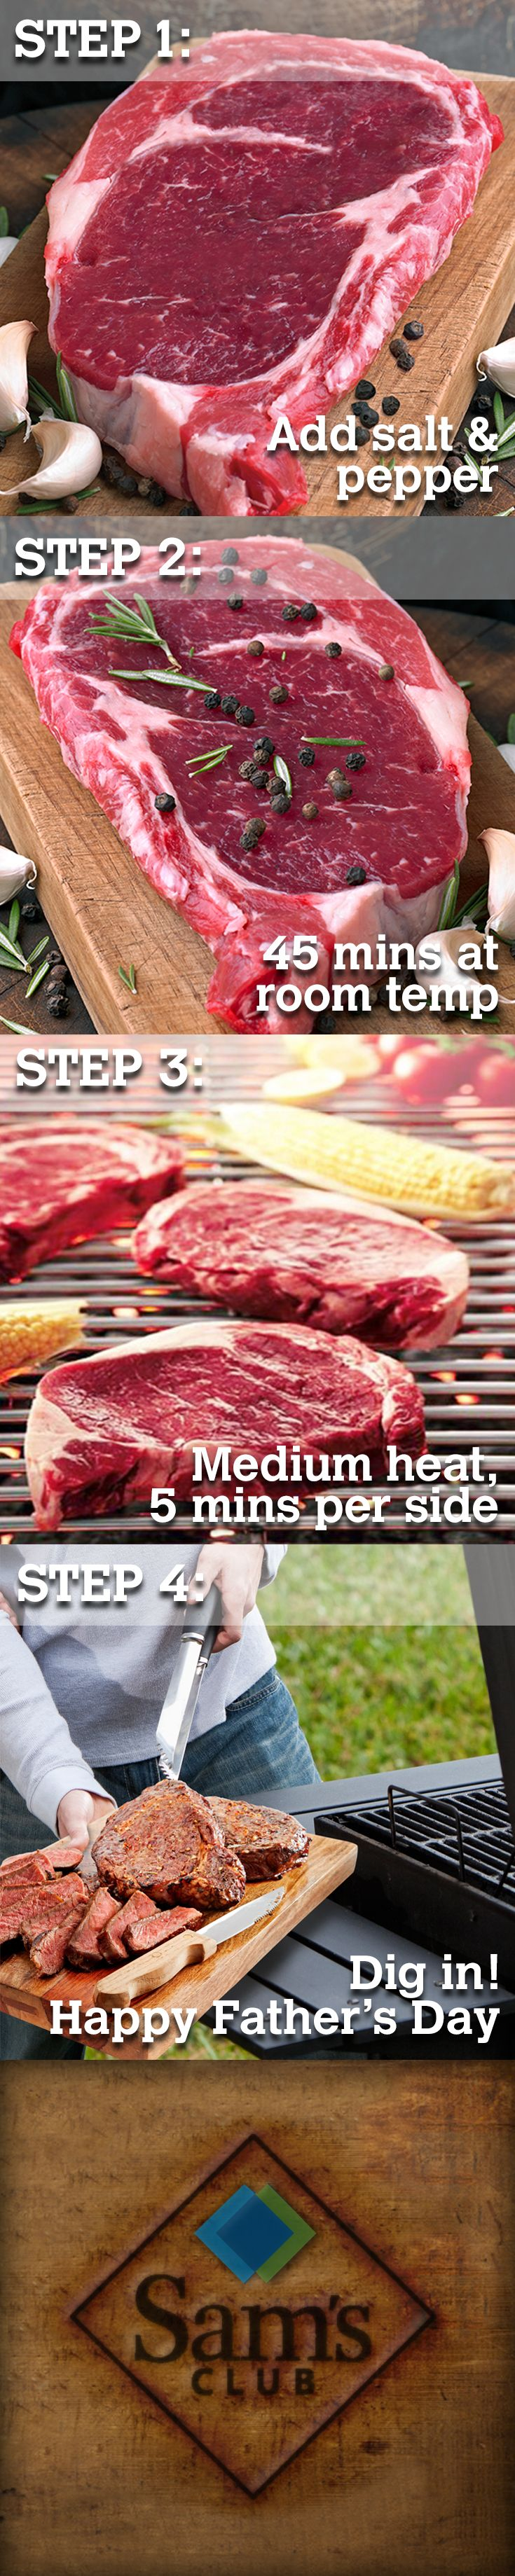 Plan the perfect Father's Day from start to finish. Make his Father's Day sizzle to perfection with our USDA choice ribeye steak, hand cut from 100% Angus Beef.  For an extra kick of flavor, top off with one of these tasty finishes.  1) caramelized onions & mushrooms 2) garlic butter 3) sprigs of rosemary 4) roasted bell peppers.